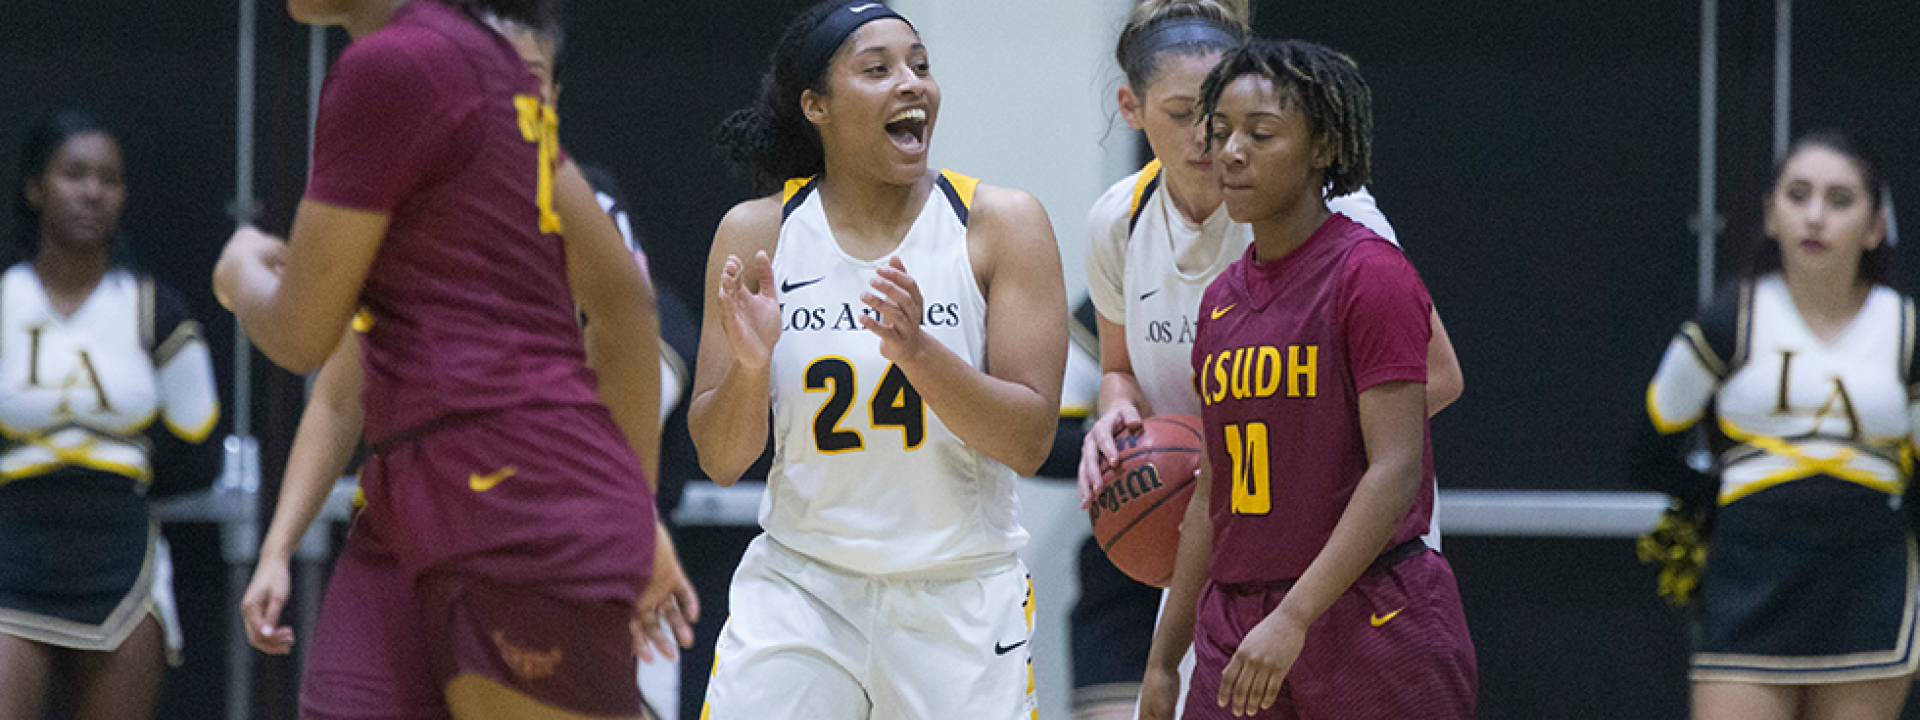 Image of the Cal State LA women's basketball team on the court mid-game.